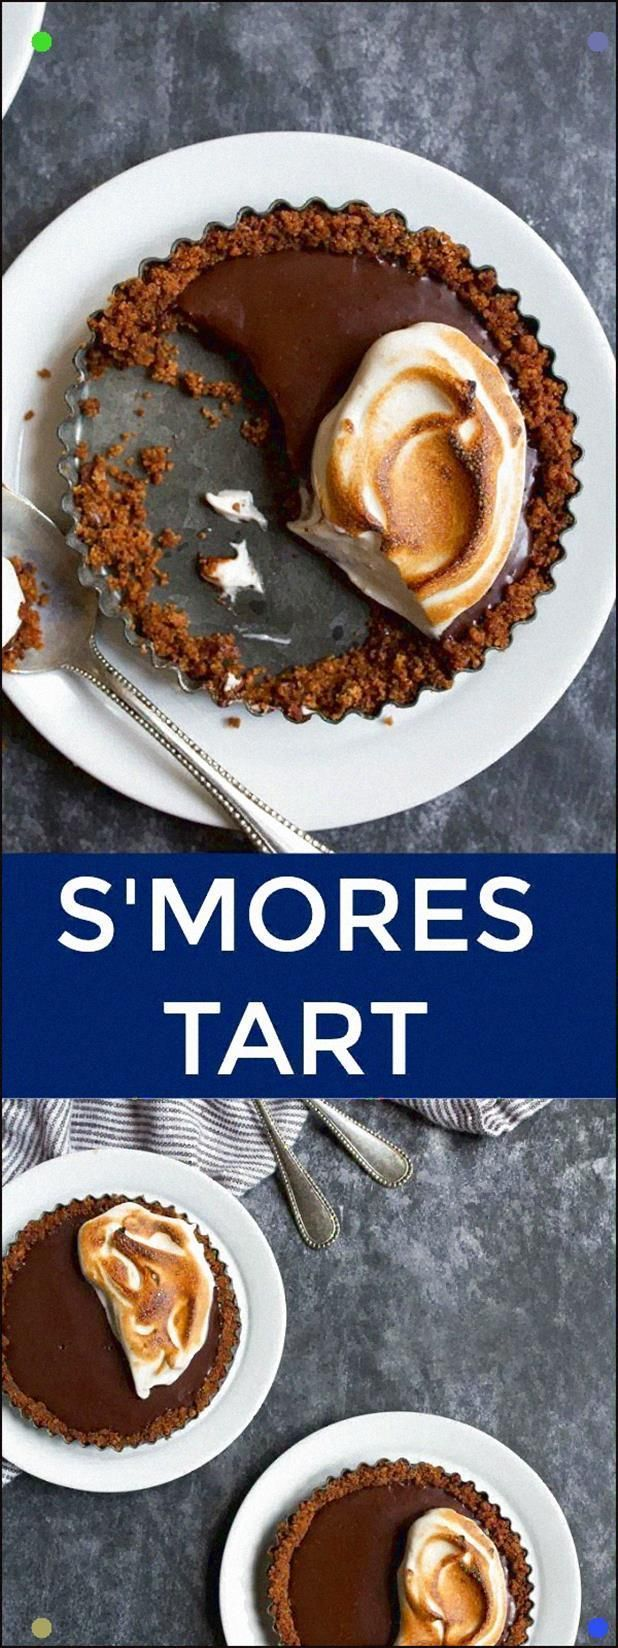 S'mores Tart For Two. Graham Cracker Crust, Easy 2-Ingredient Chocolate Pie Filling, And Homemade Marshmallow Fluff. Together Makes The Best S'mores Dessert Ever Smores Dessert. #homemademarshmallowfluff S'mores Tart For Two. Graham Cracker Crust, Easy 2-Ingredient Chocolate Pie Filling, And Homemade Marshmallow Fluff. Together Makes The Best S'mores Dessert Ever Smores Dessert. #marshmallowfluffrecipes S'mores Tart For Two. Graham Cracker Crust, Easy 2-Ingredient Chocolate Pie Filling, And Home #homemadegrahamcrackercrust